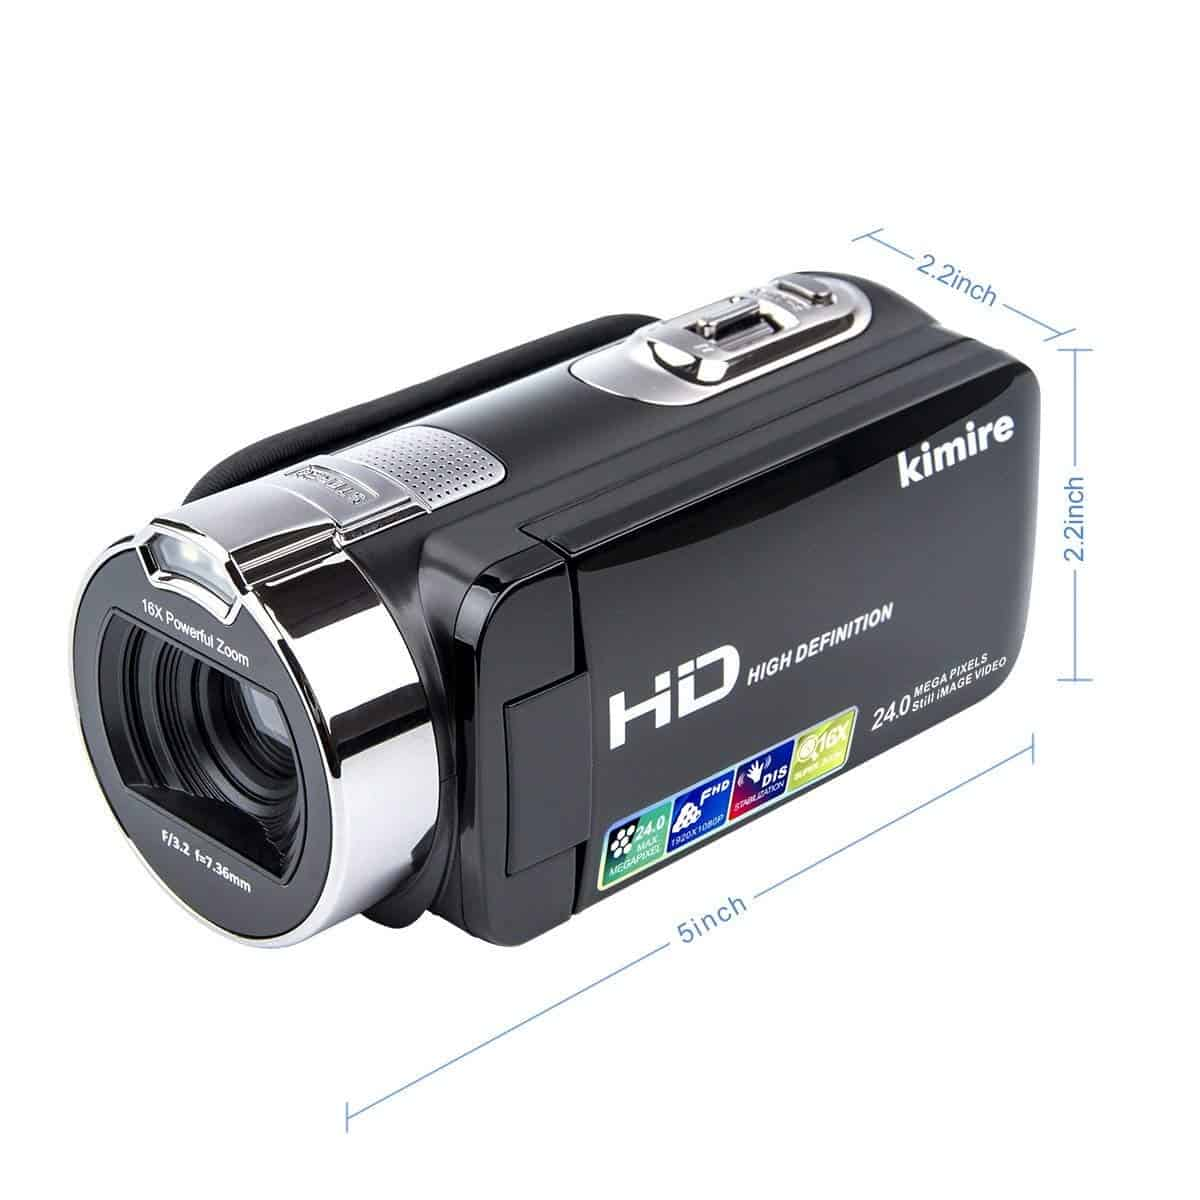 Vlogging Camera Video Camera Camcorder Digital Recorder, Kimire HD 1080P 24 MP 16X